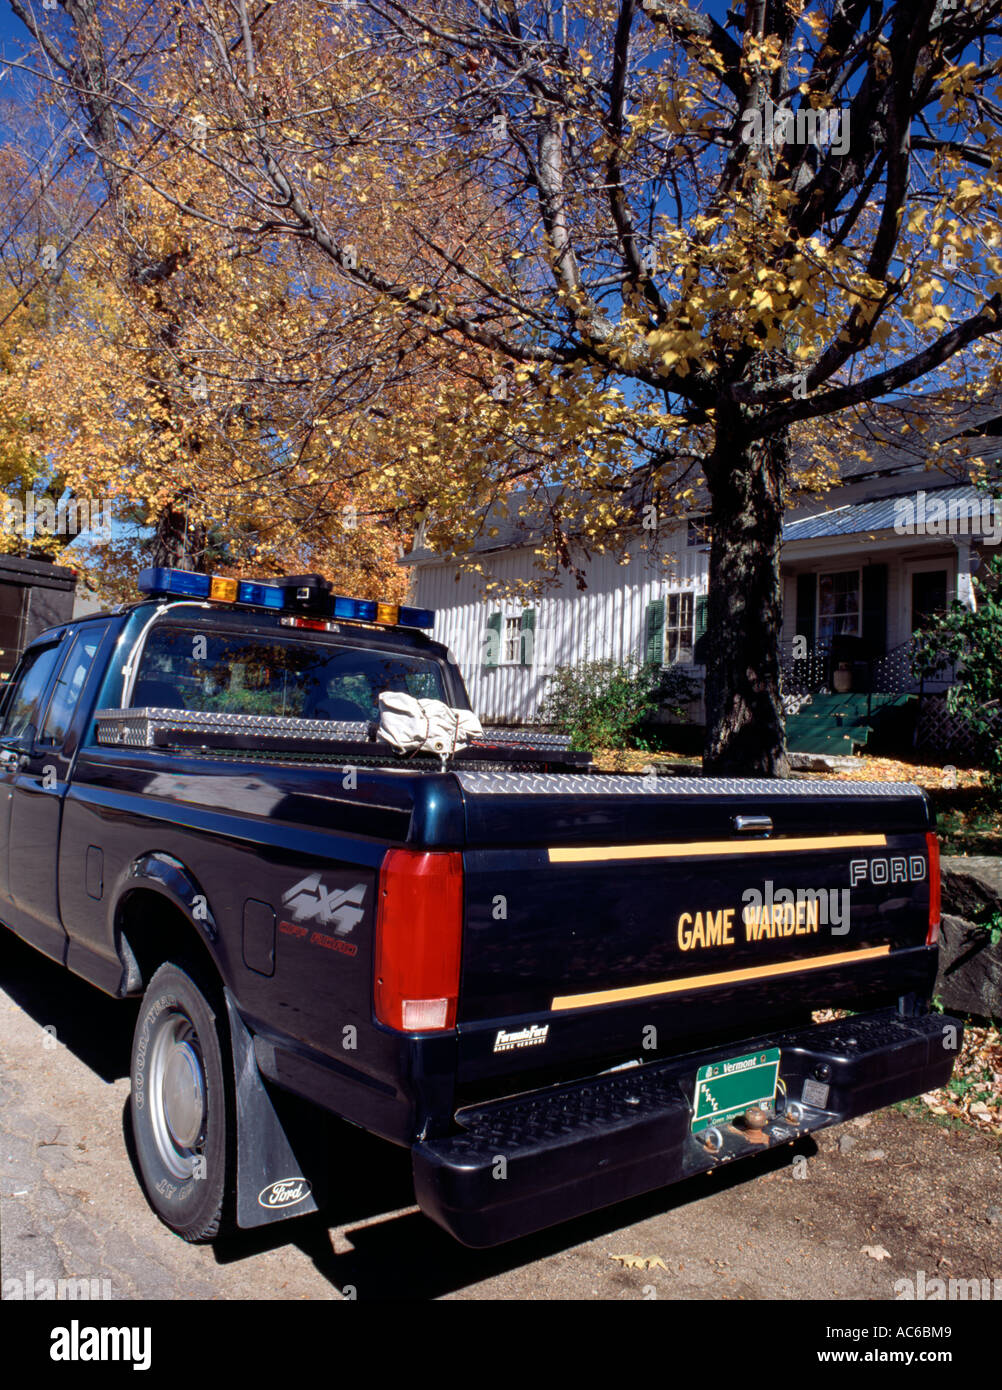 Game Warden S Truck In Vermont New England Stock Photo